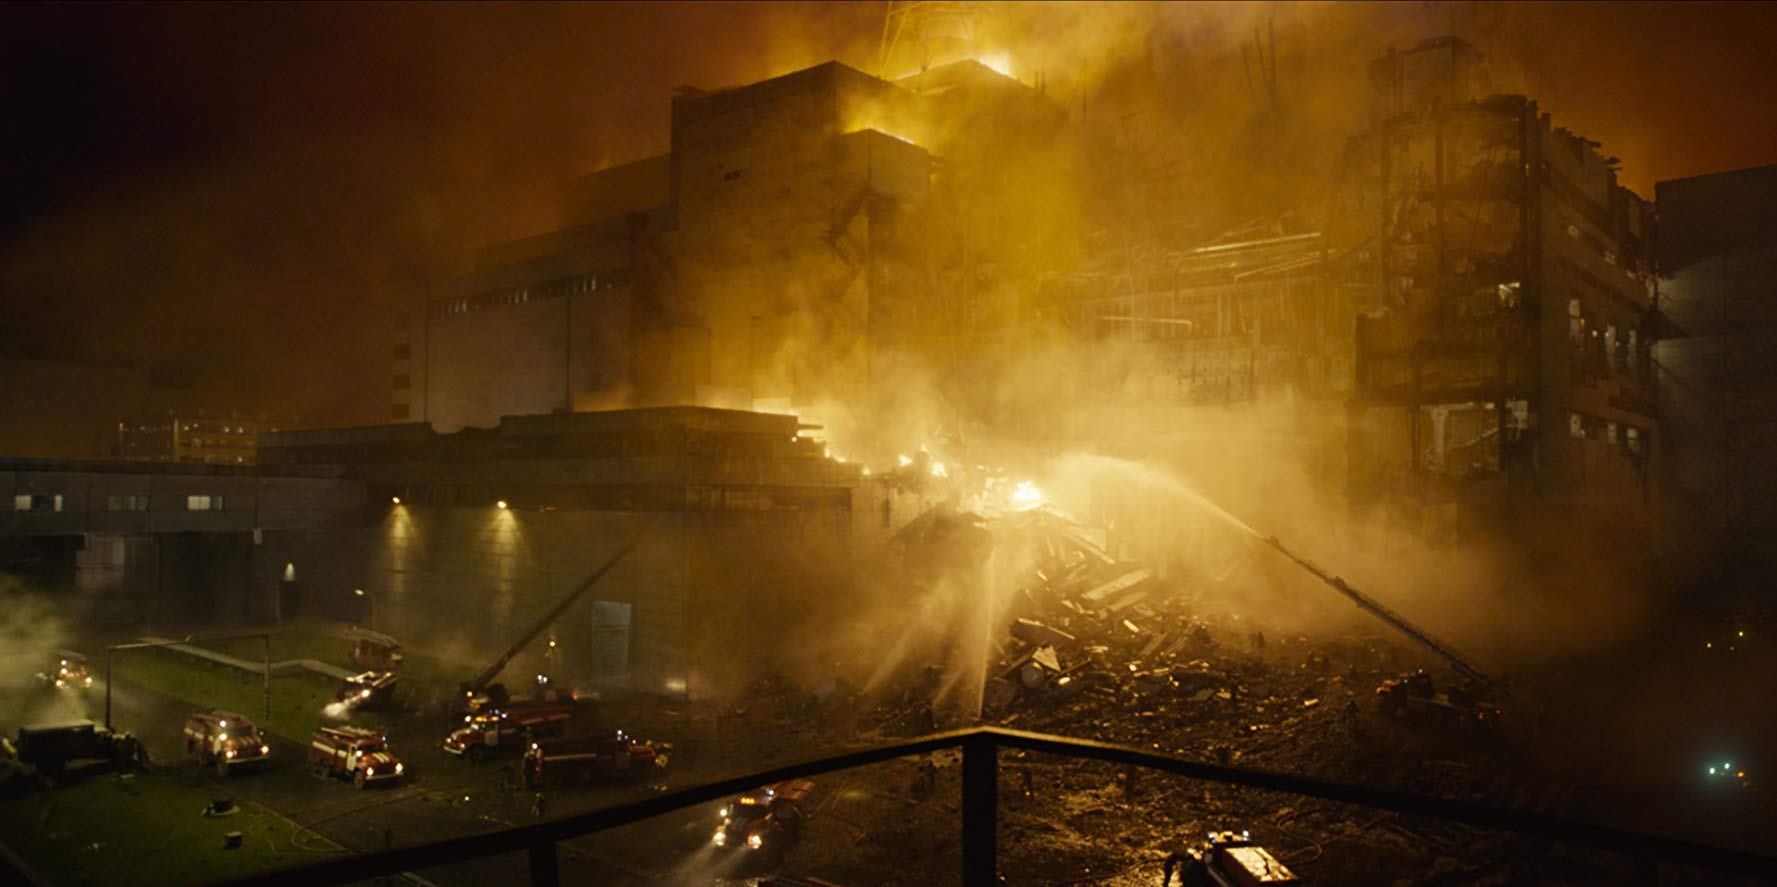 the explosion of Chernobyl reactor